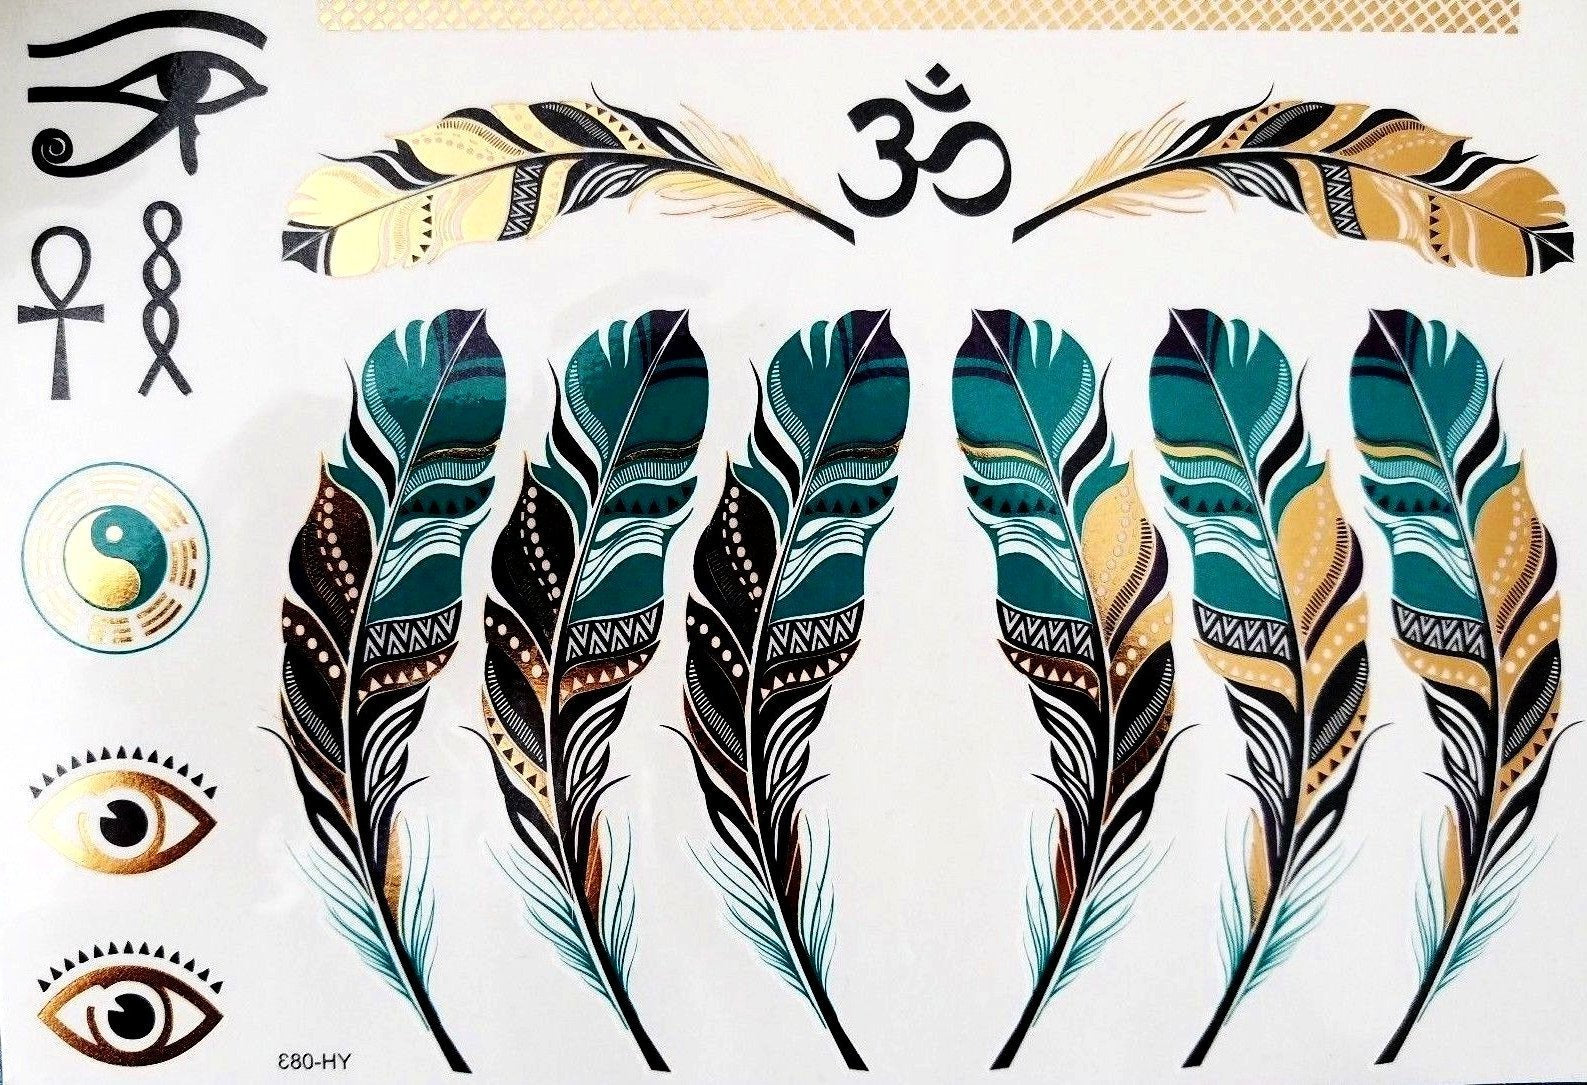 Feather Metallic Gold Silver Black Turquoise Temporary Tattoo